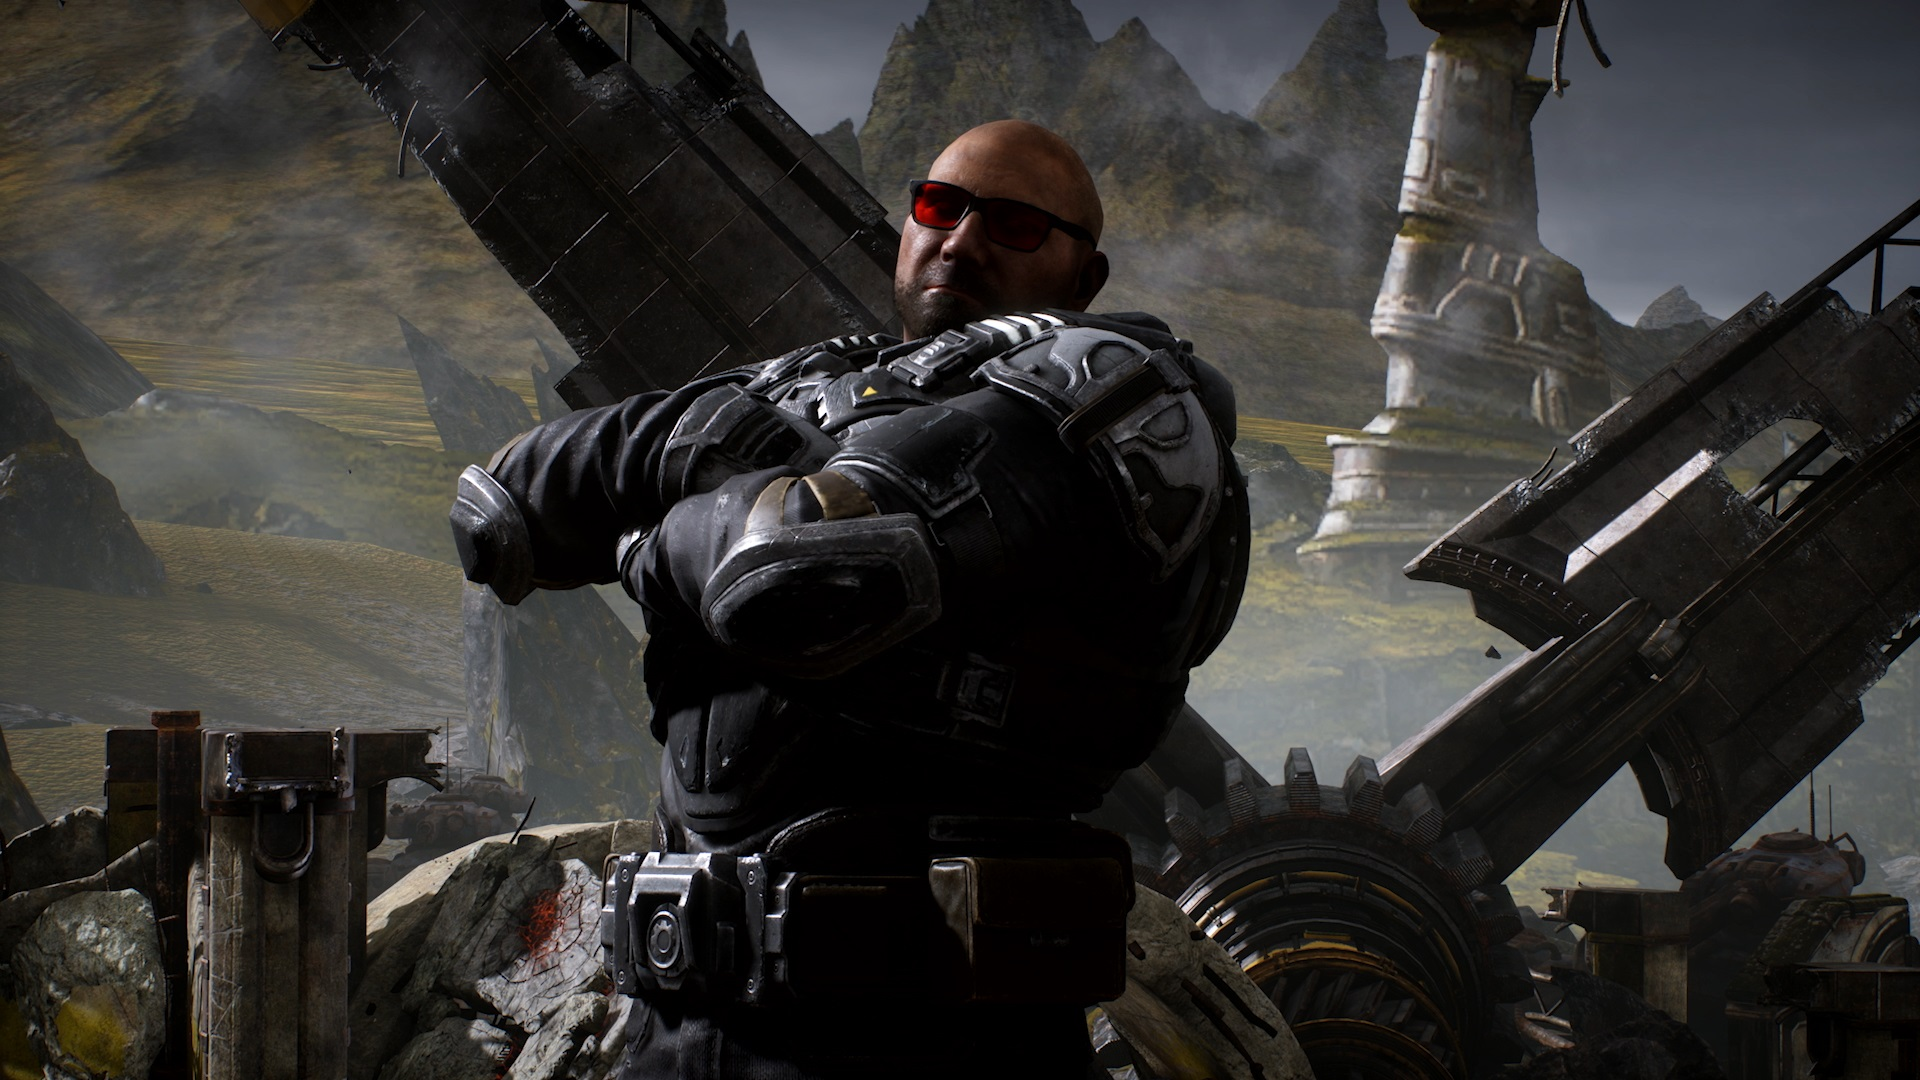 The Batista Bomb is the most incredible Gears 5 execution screenshot